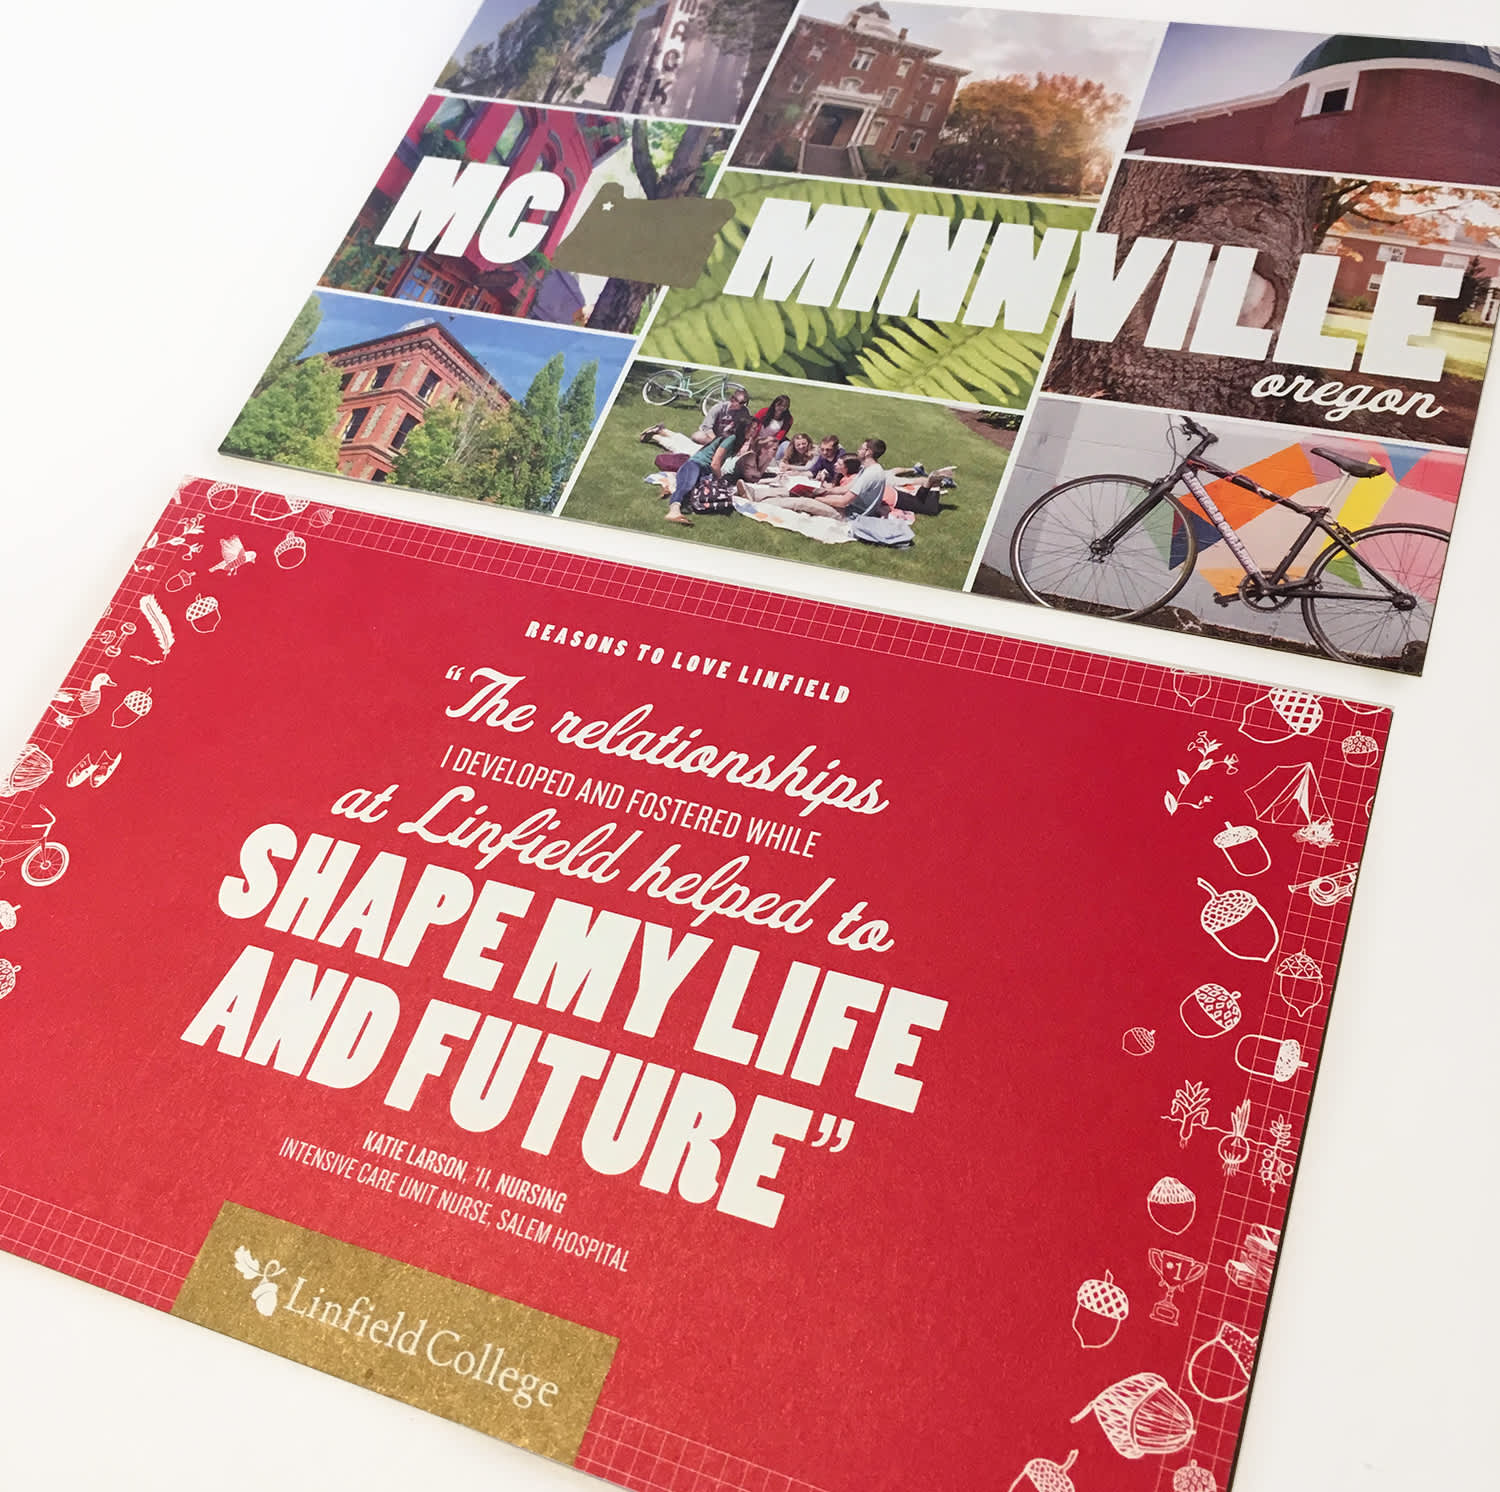 Linfield College marketing materials